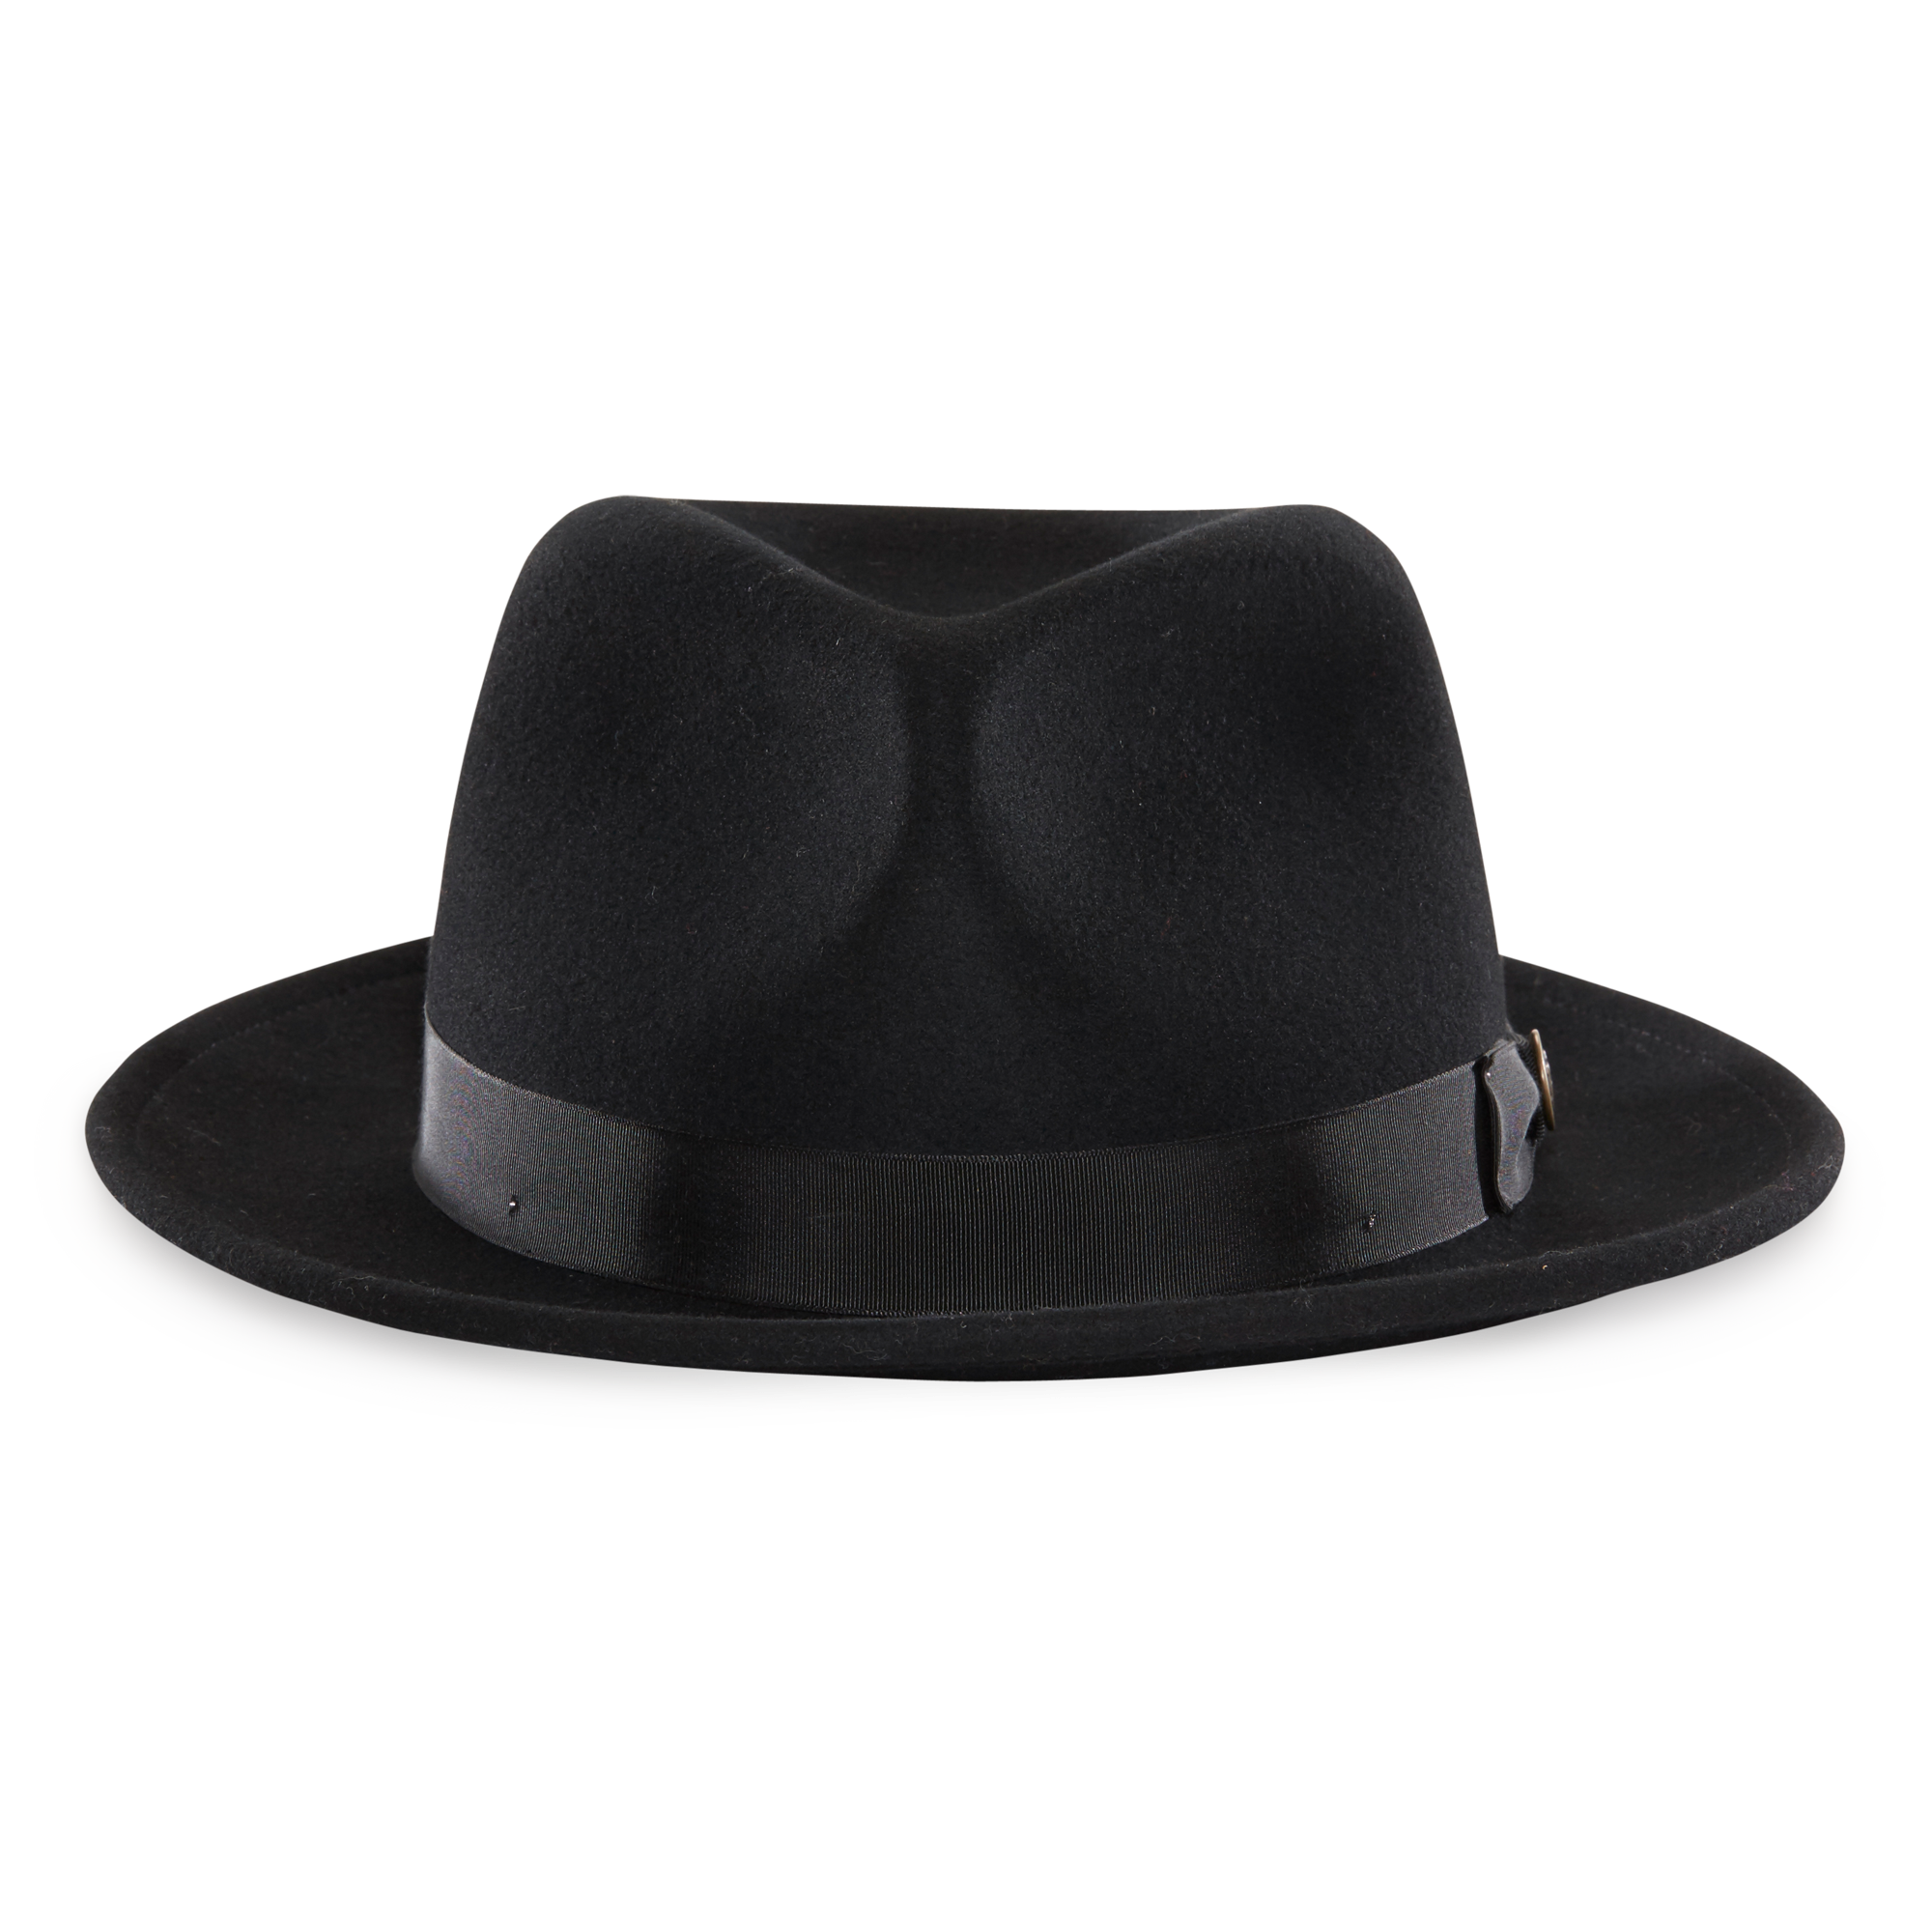 fashion hat png